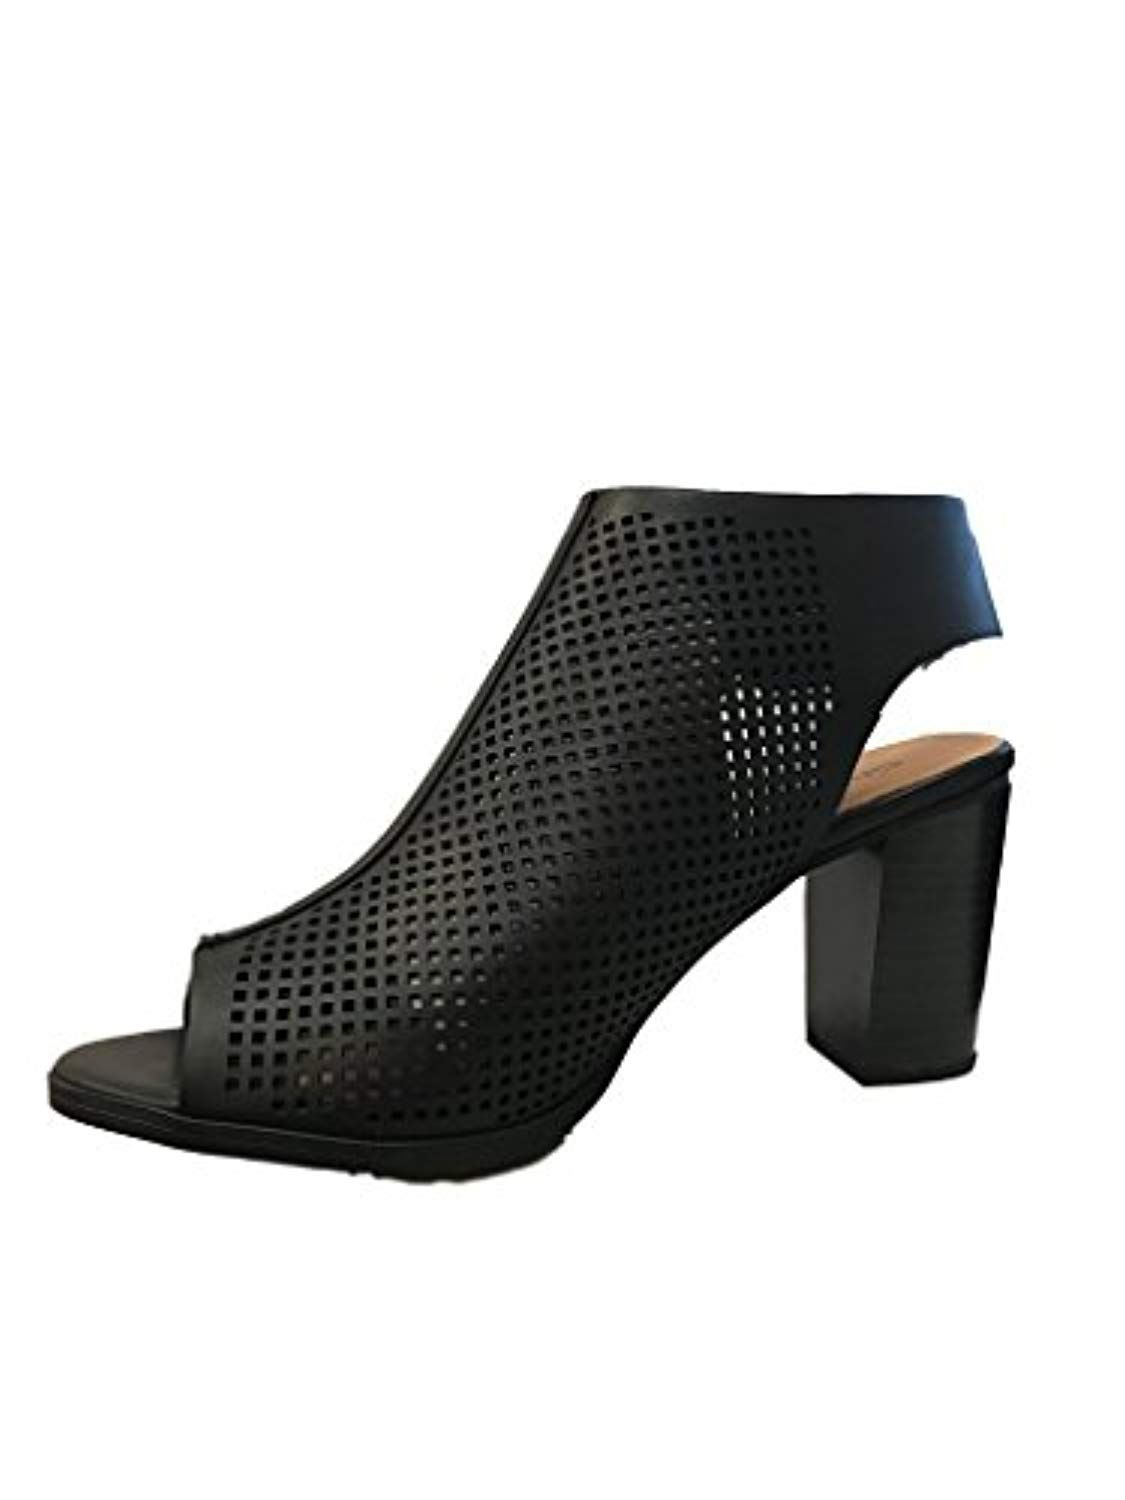 8051f9bcac1 Maddie Peep Toe Ankle Strap Sandal - Western Bootie Low Stacked Heel Open  Toe Cutout - Casual by J Adams (8.5...    Details can be found by clicking  on the ...